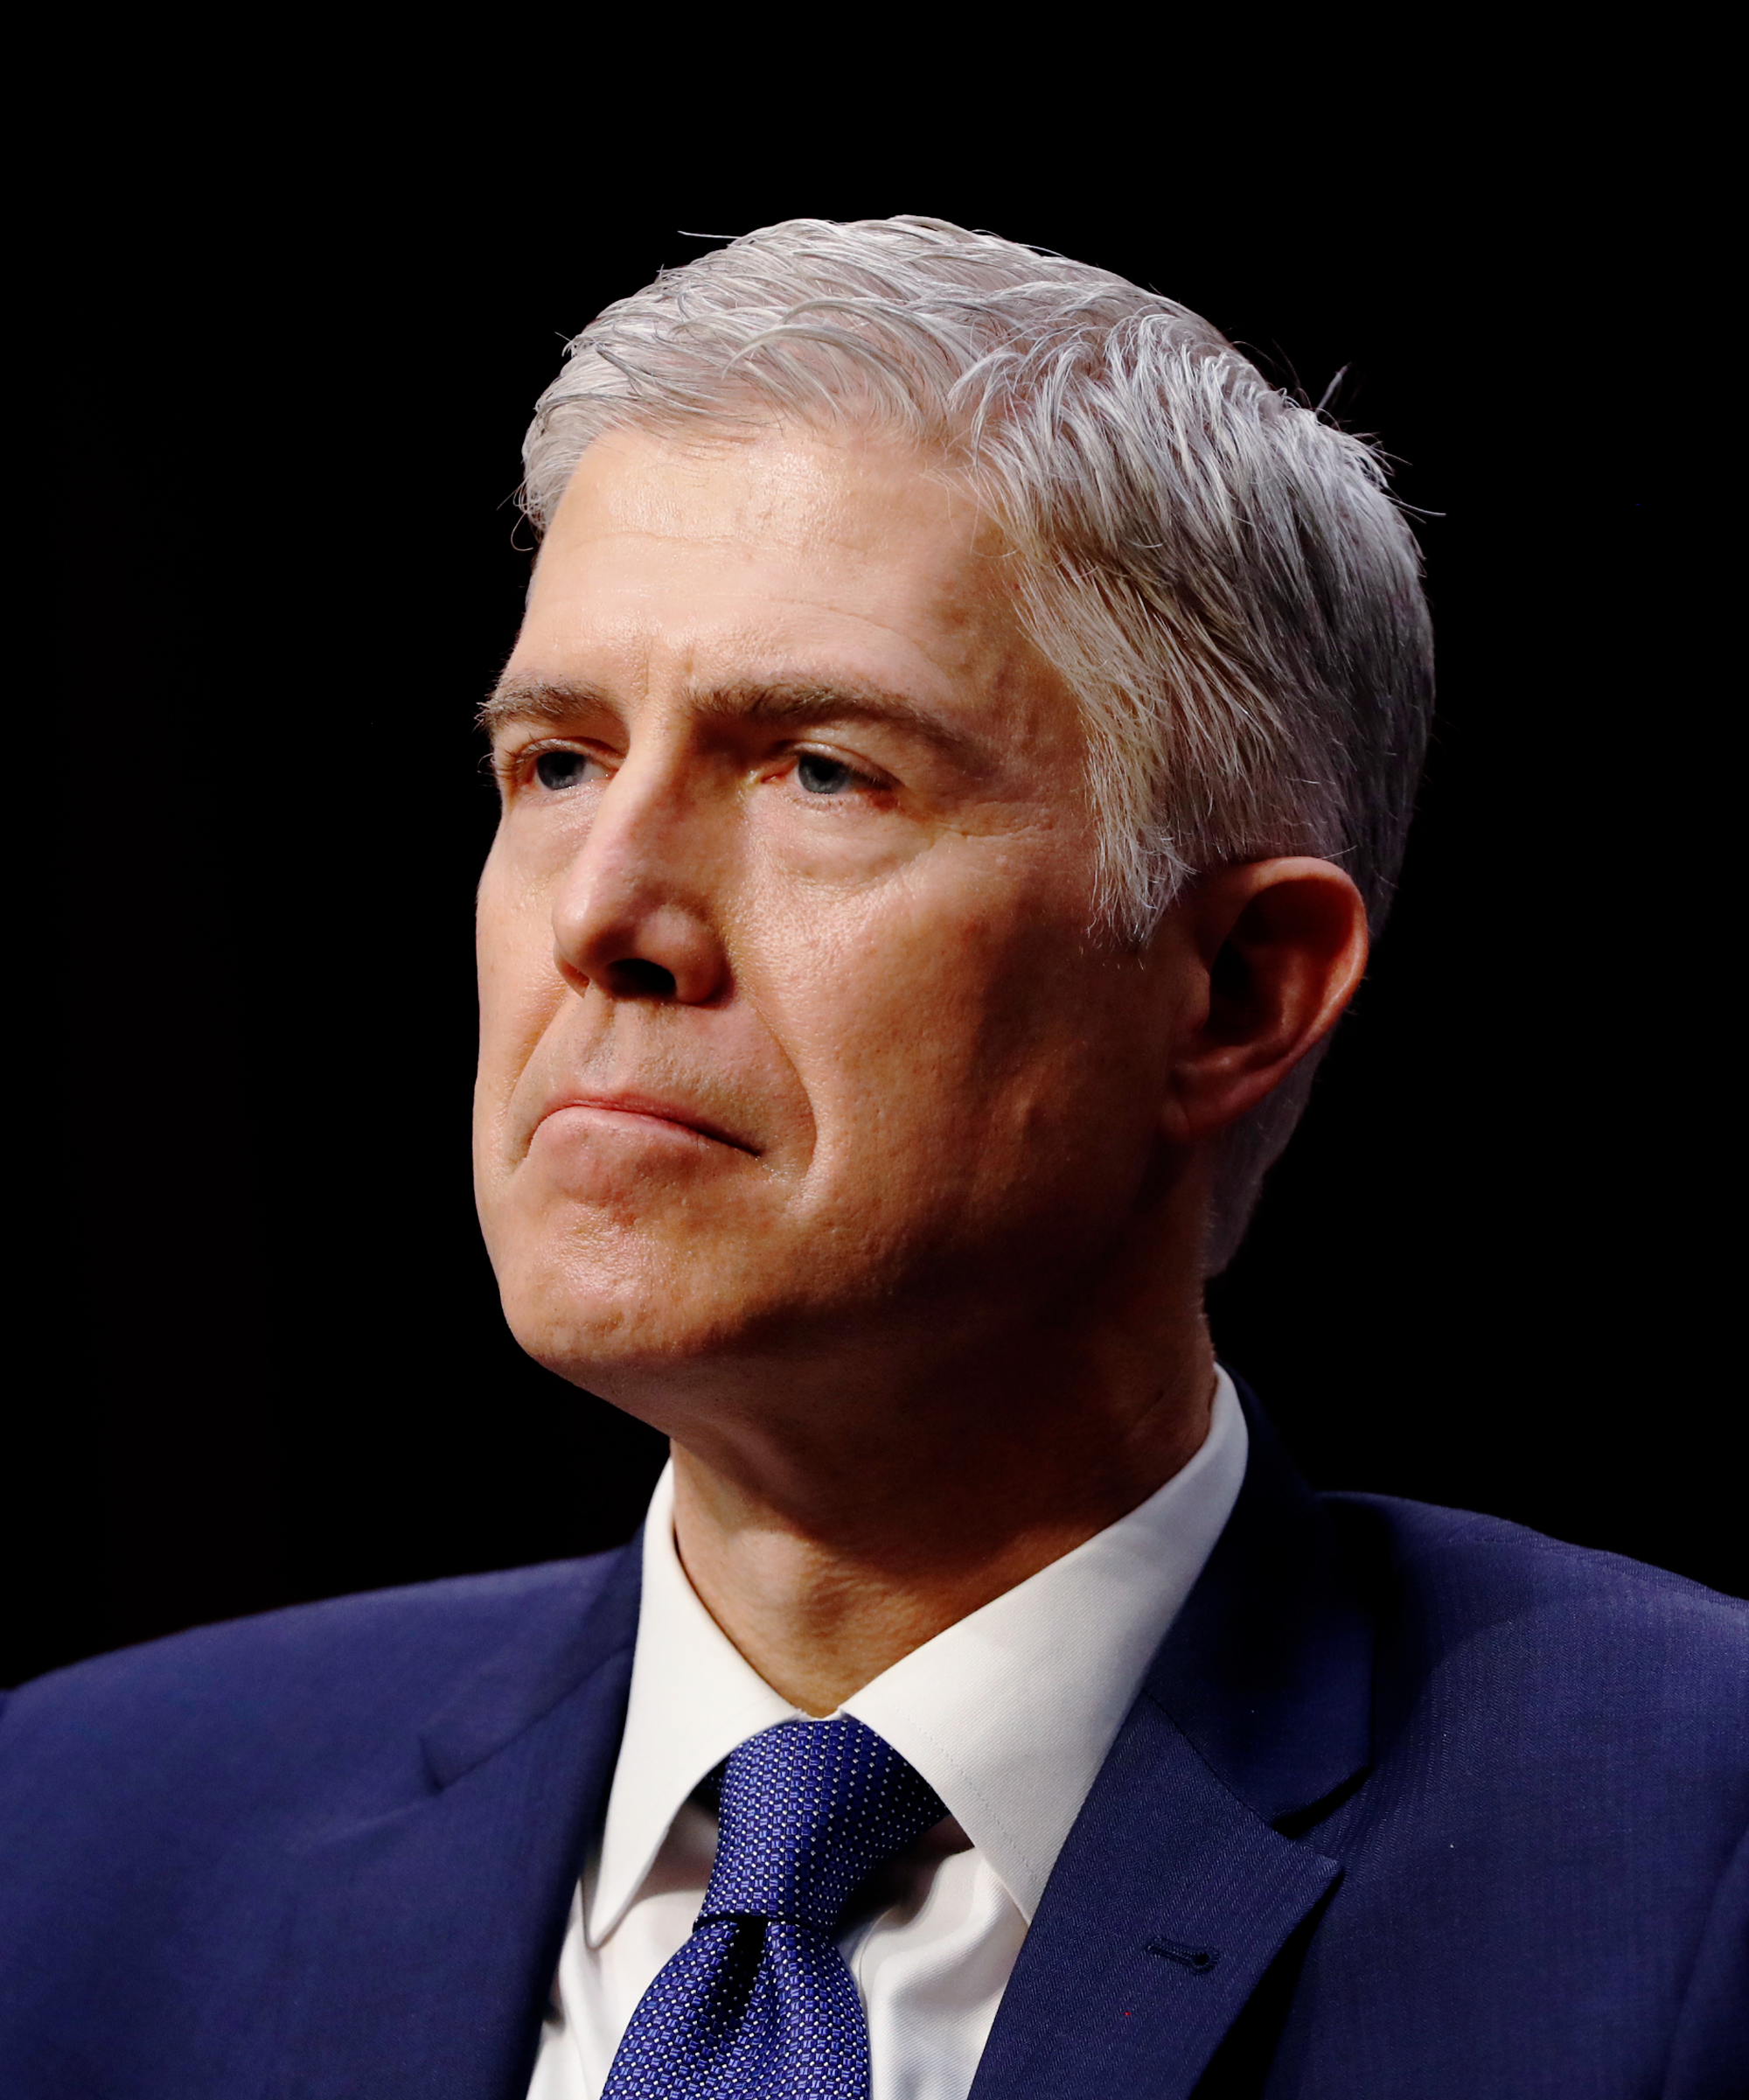 Gorsuch confirmed to the dismay of LGBT rights supporters